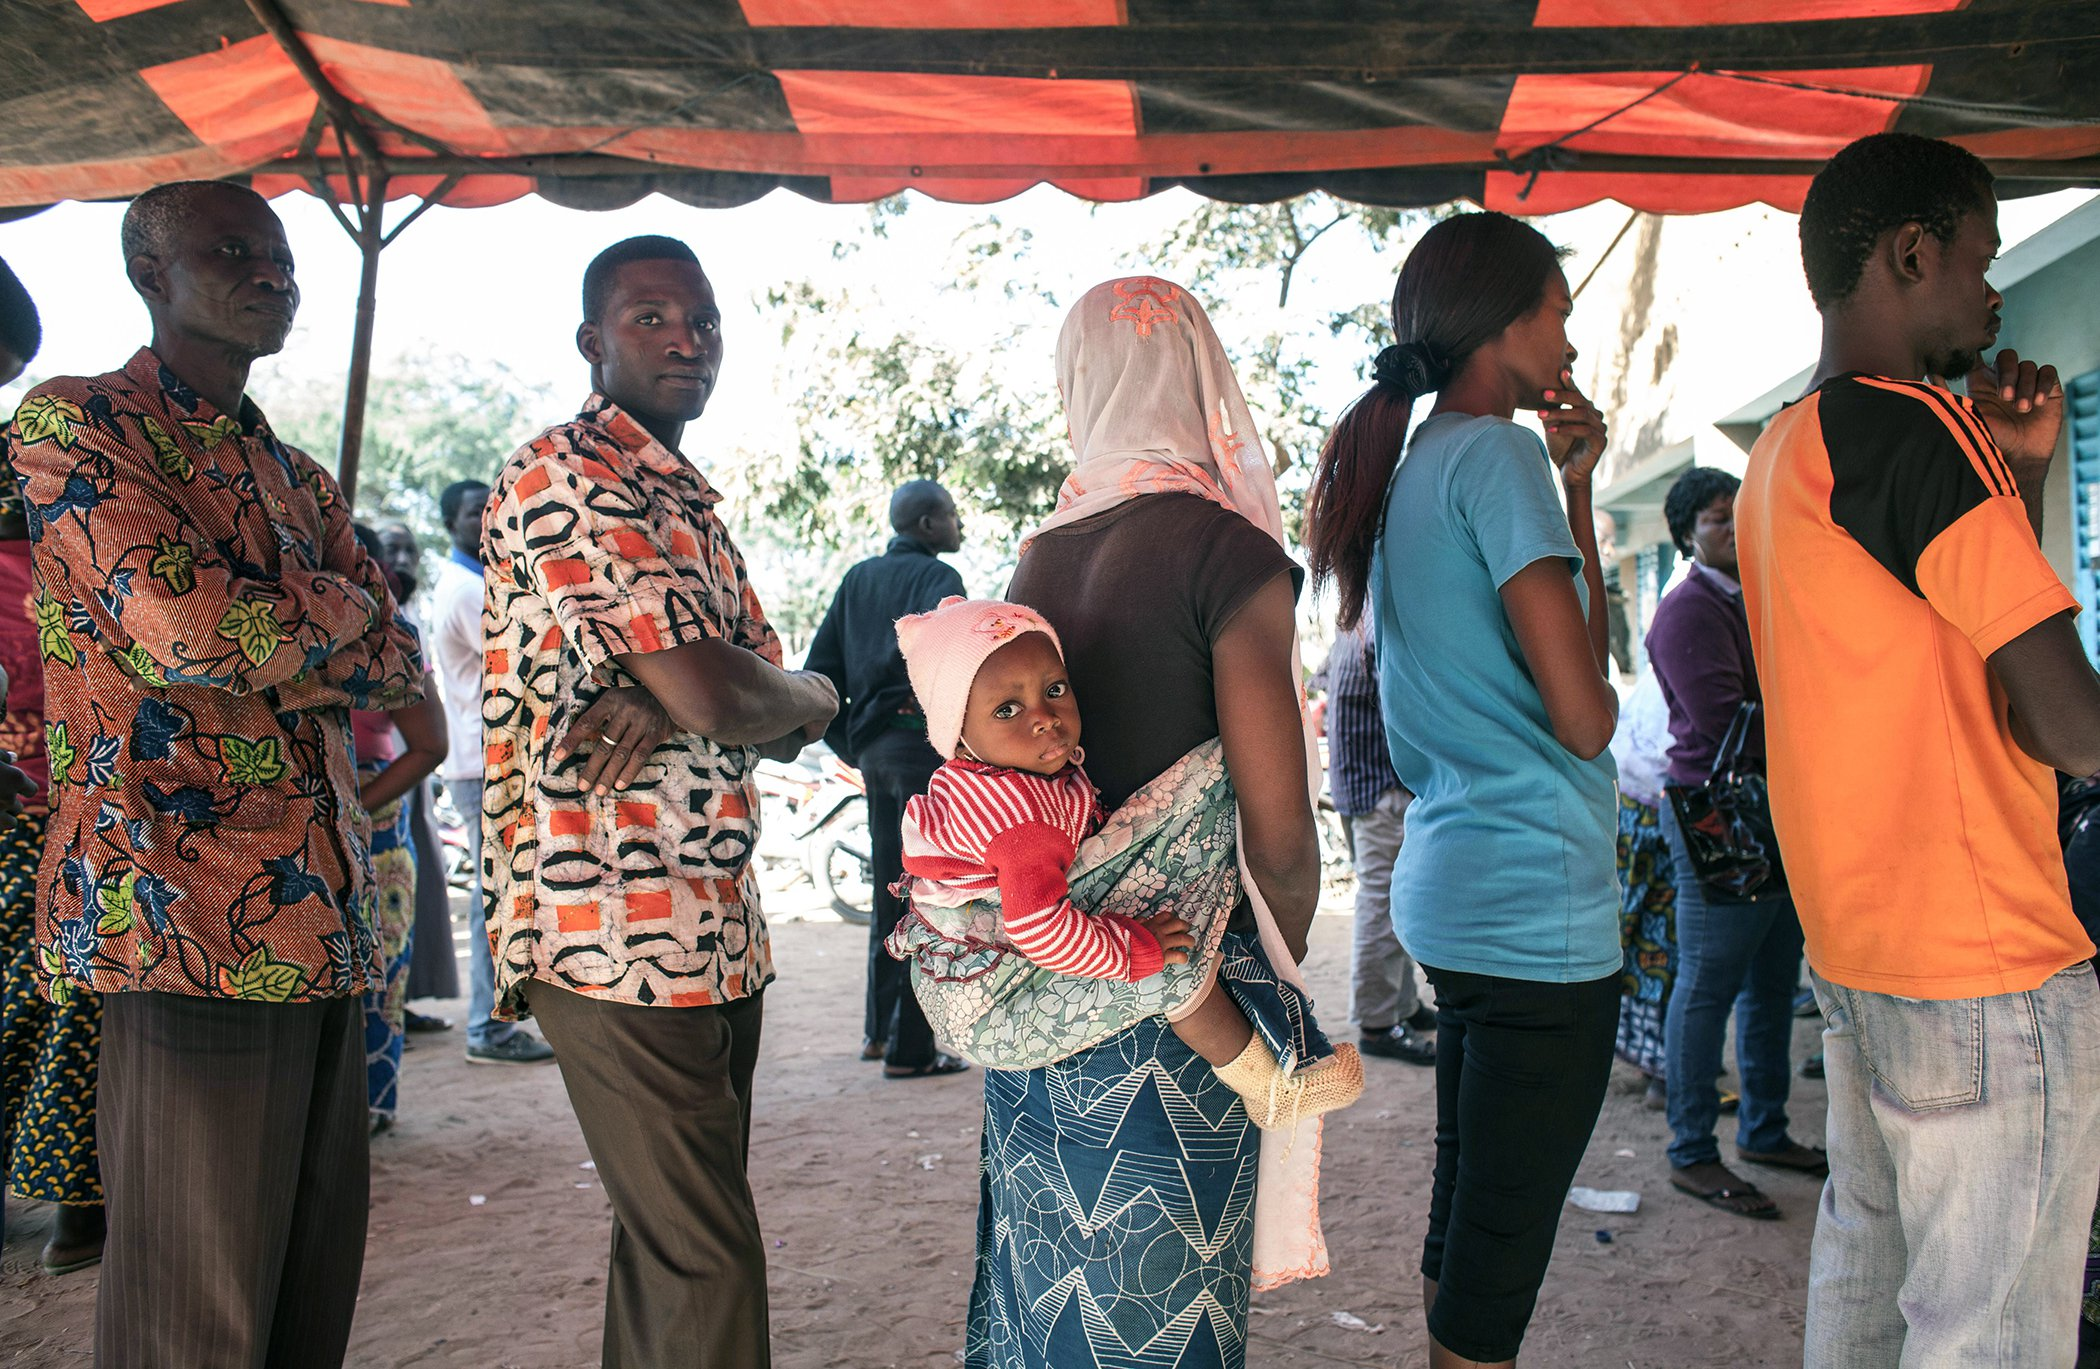 Voting-Around-The-World-Burkina-Faso.jpg